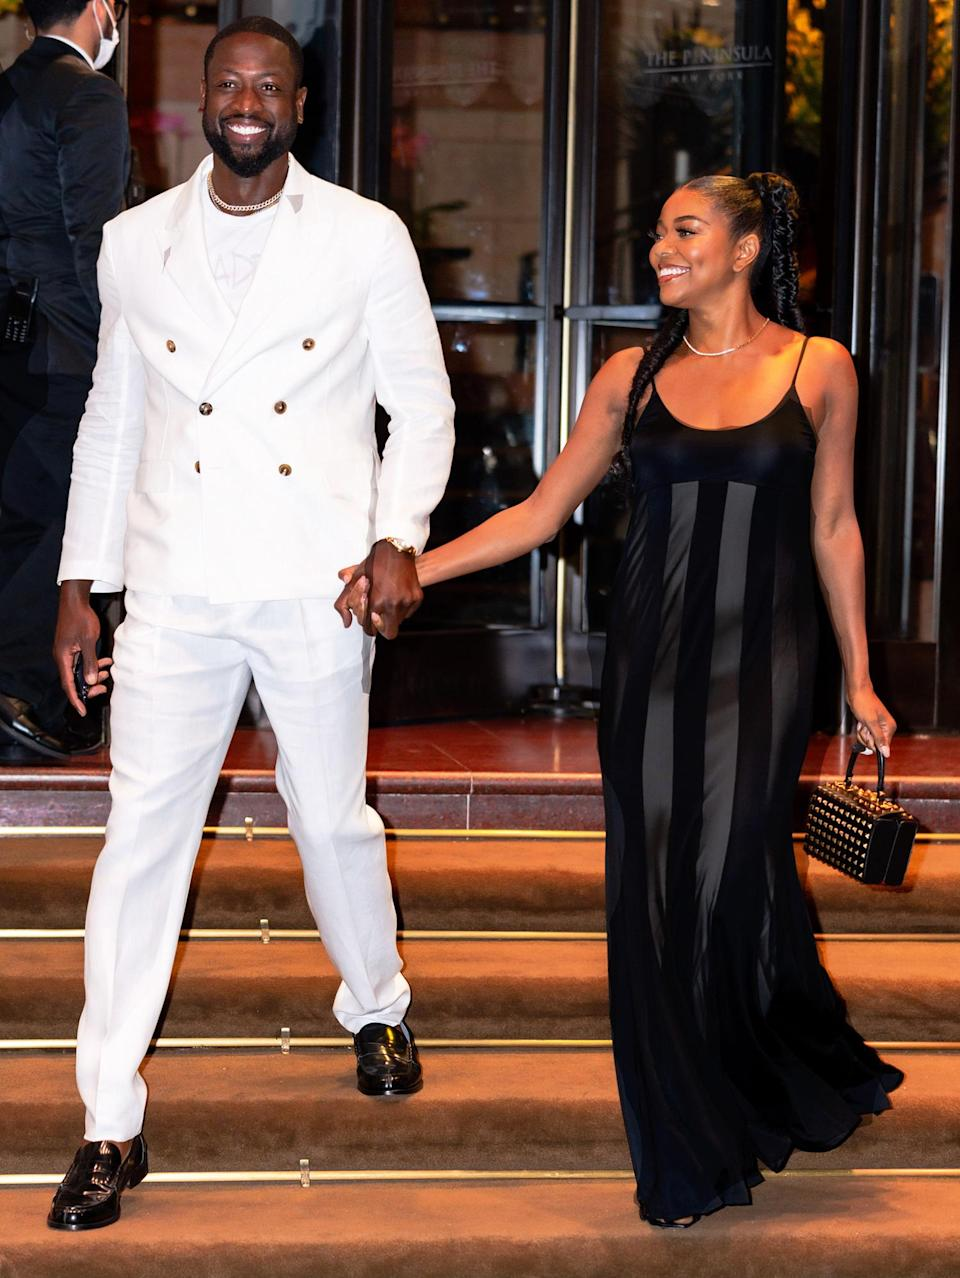 <p>Gabrielle Union and Dwyane Wade couldn't look better as they step out for date night in New York City.</p>